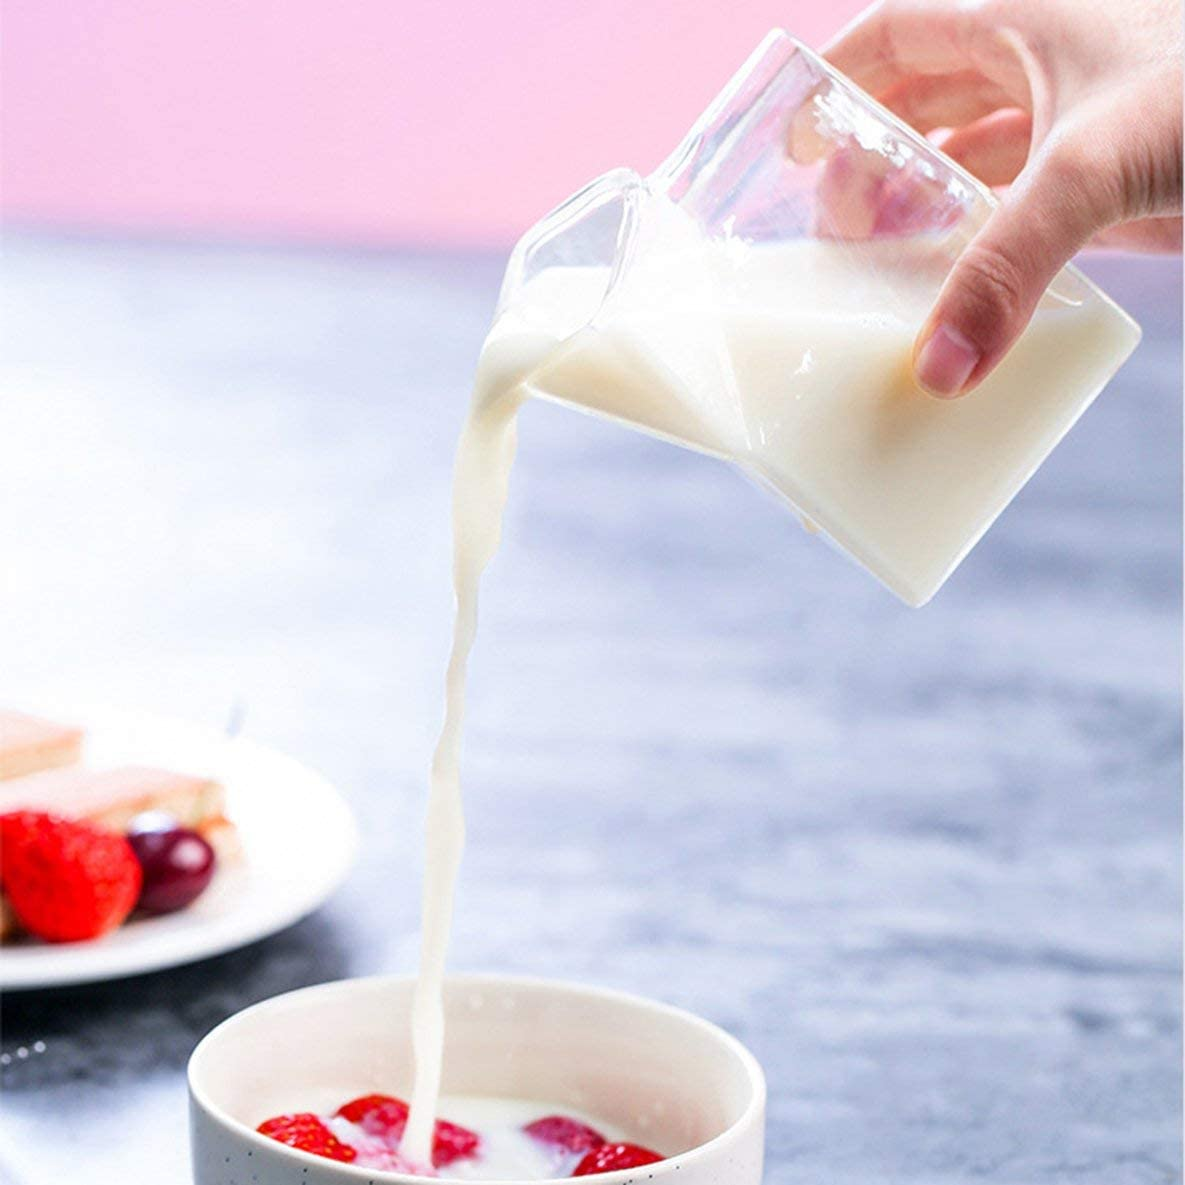 Rouku Glass Milk Glass Cups Creative American Milk Cartons Novelty Milk Coffee Juice Cup Crystal Breakfast Container Box Can Microwave